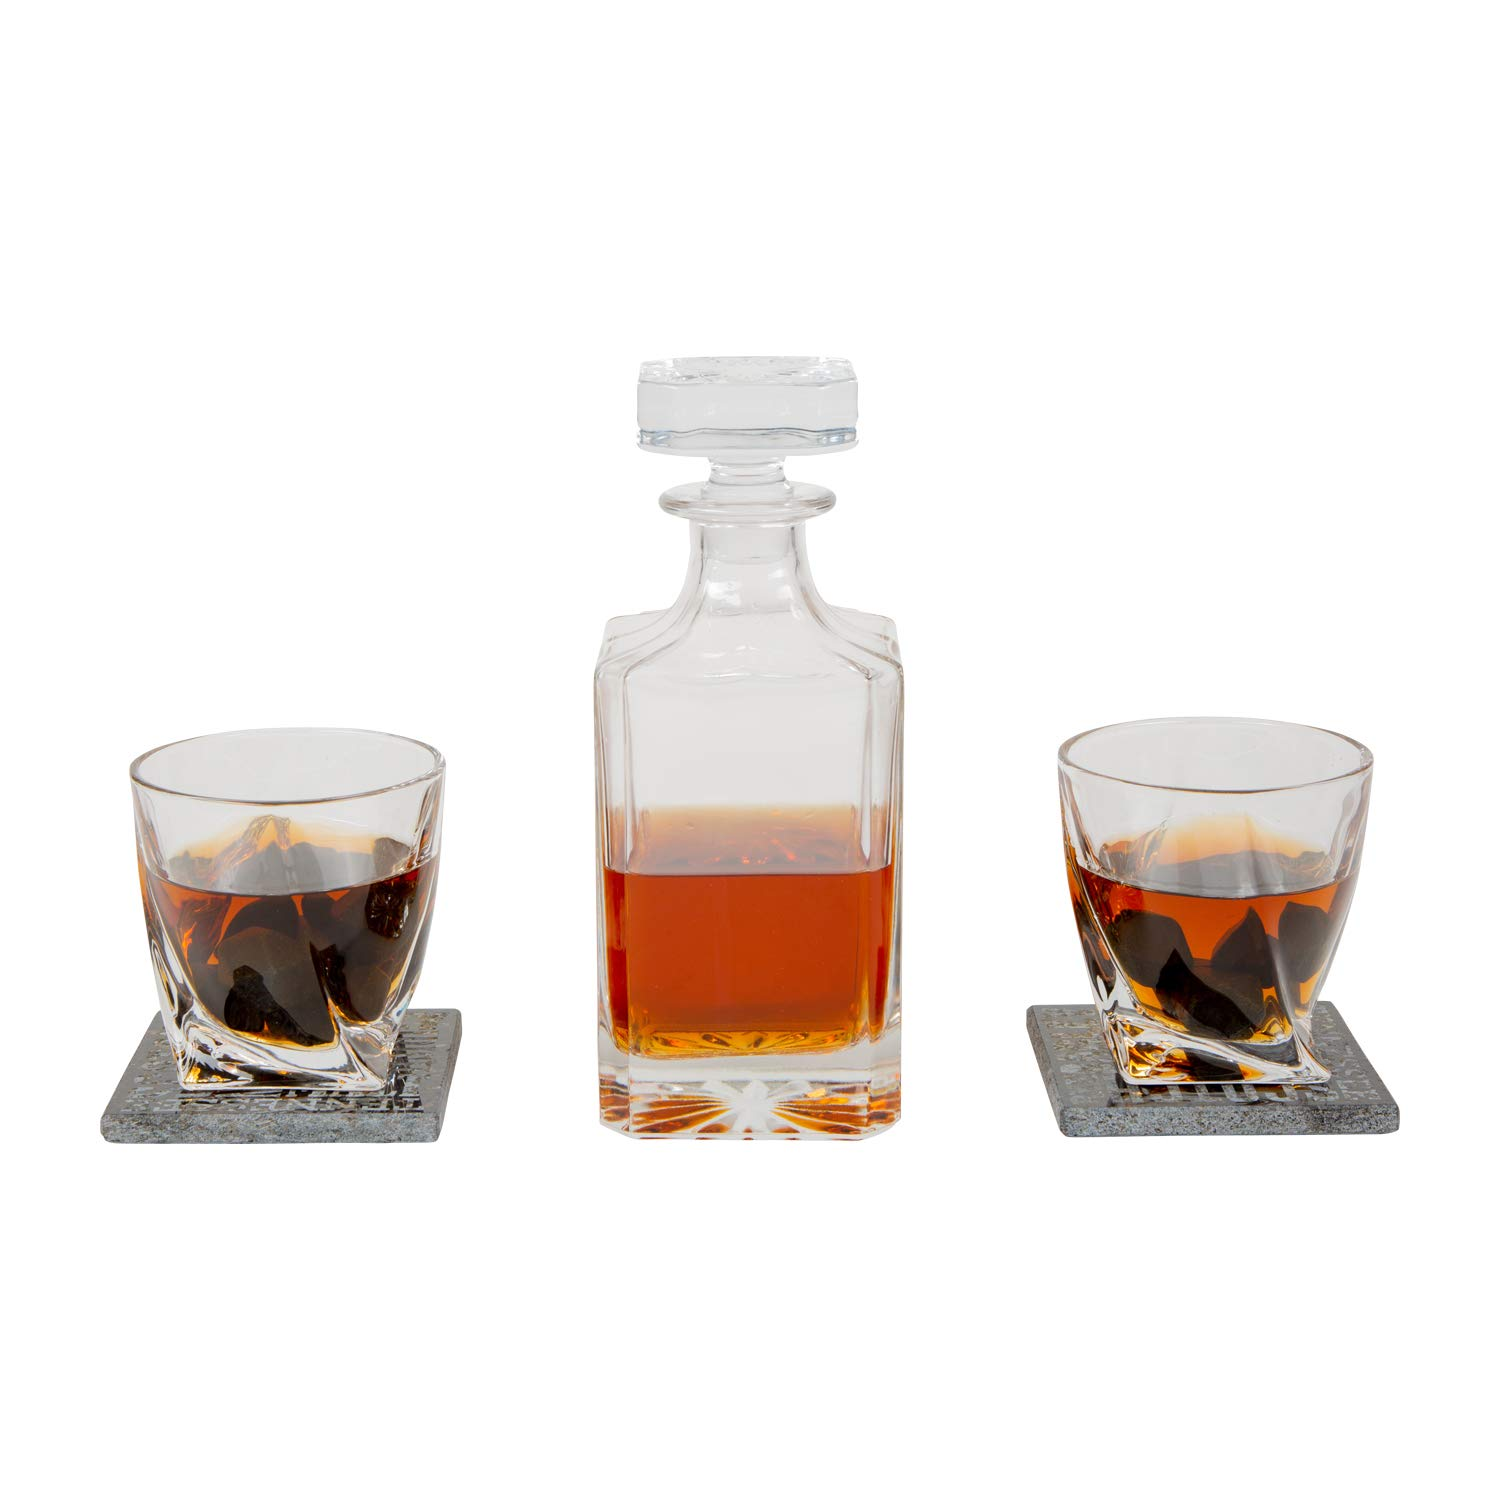 Atterstone Crate Whiskey Box Set with Premium Decanter and 2 Swirl Glasses, Includes 9 Chilling Stones and 2 Dark Stone Coasters, Encased in Polished Wood Box Great for Holiday and Wedding Gifts by Atterstone (Image #7)